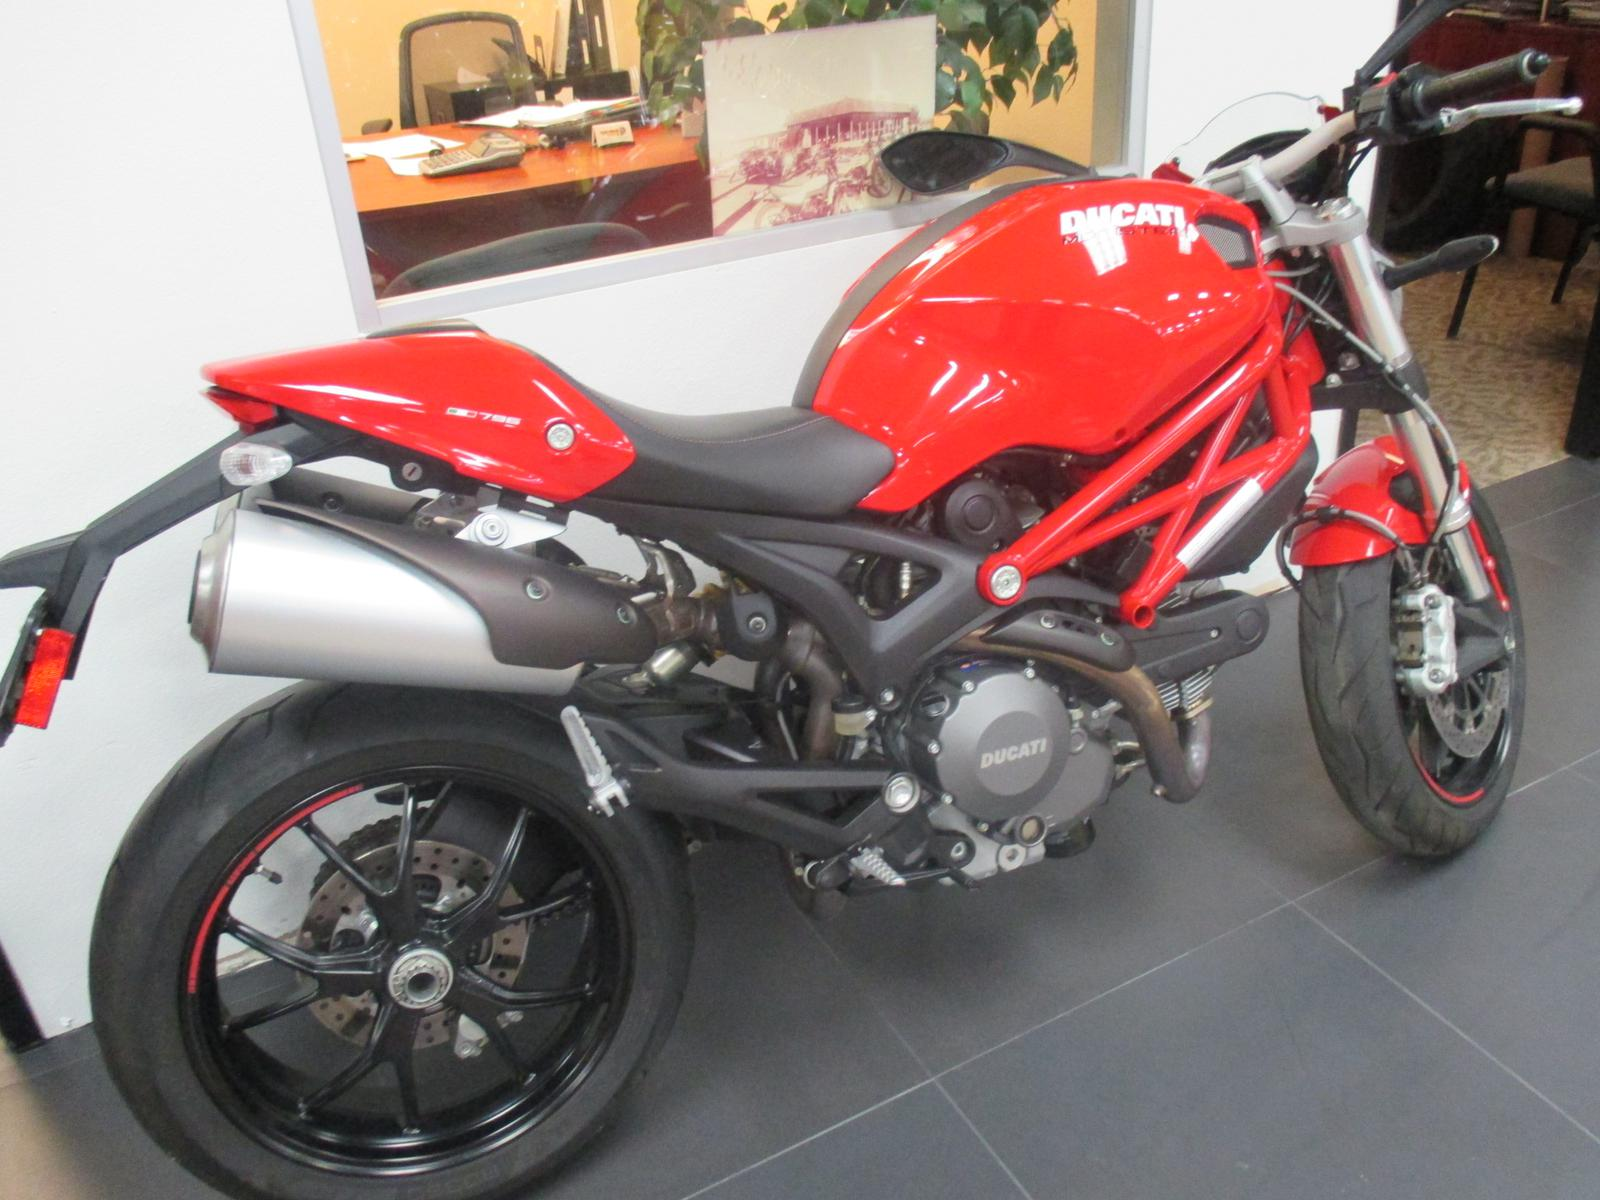 2013 Ducati MONSTER 796, motorcycle listing